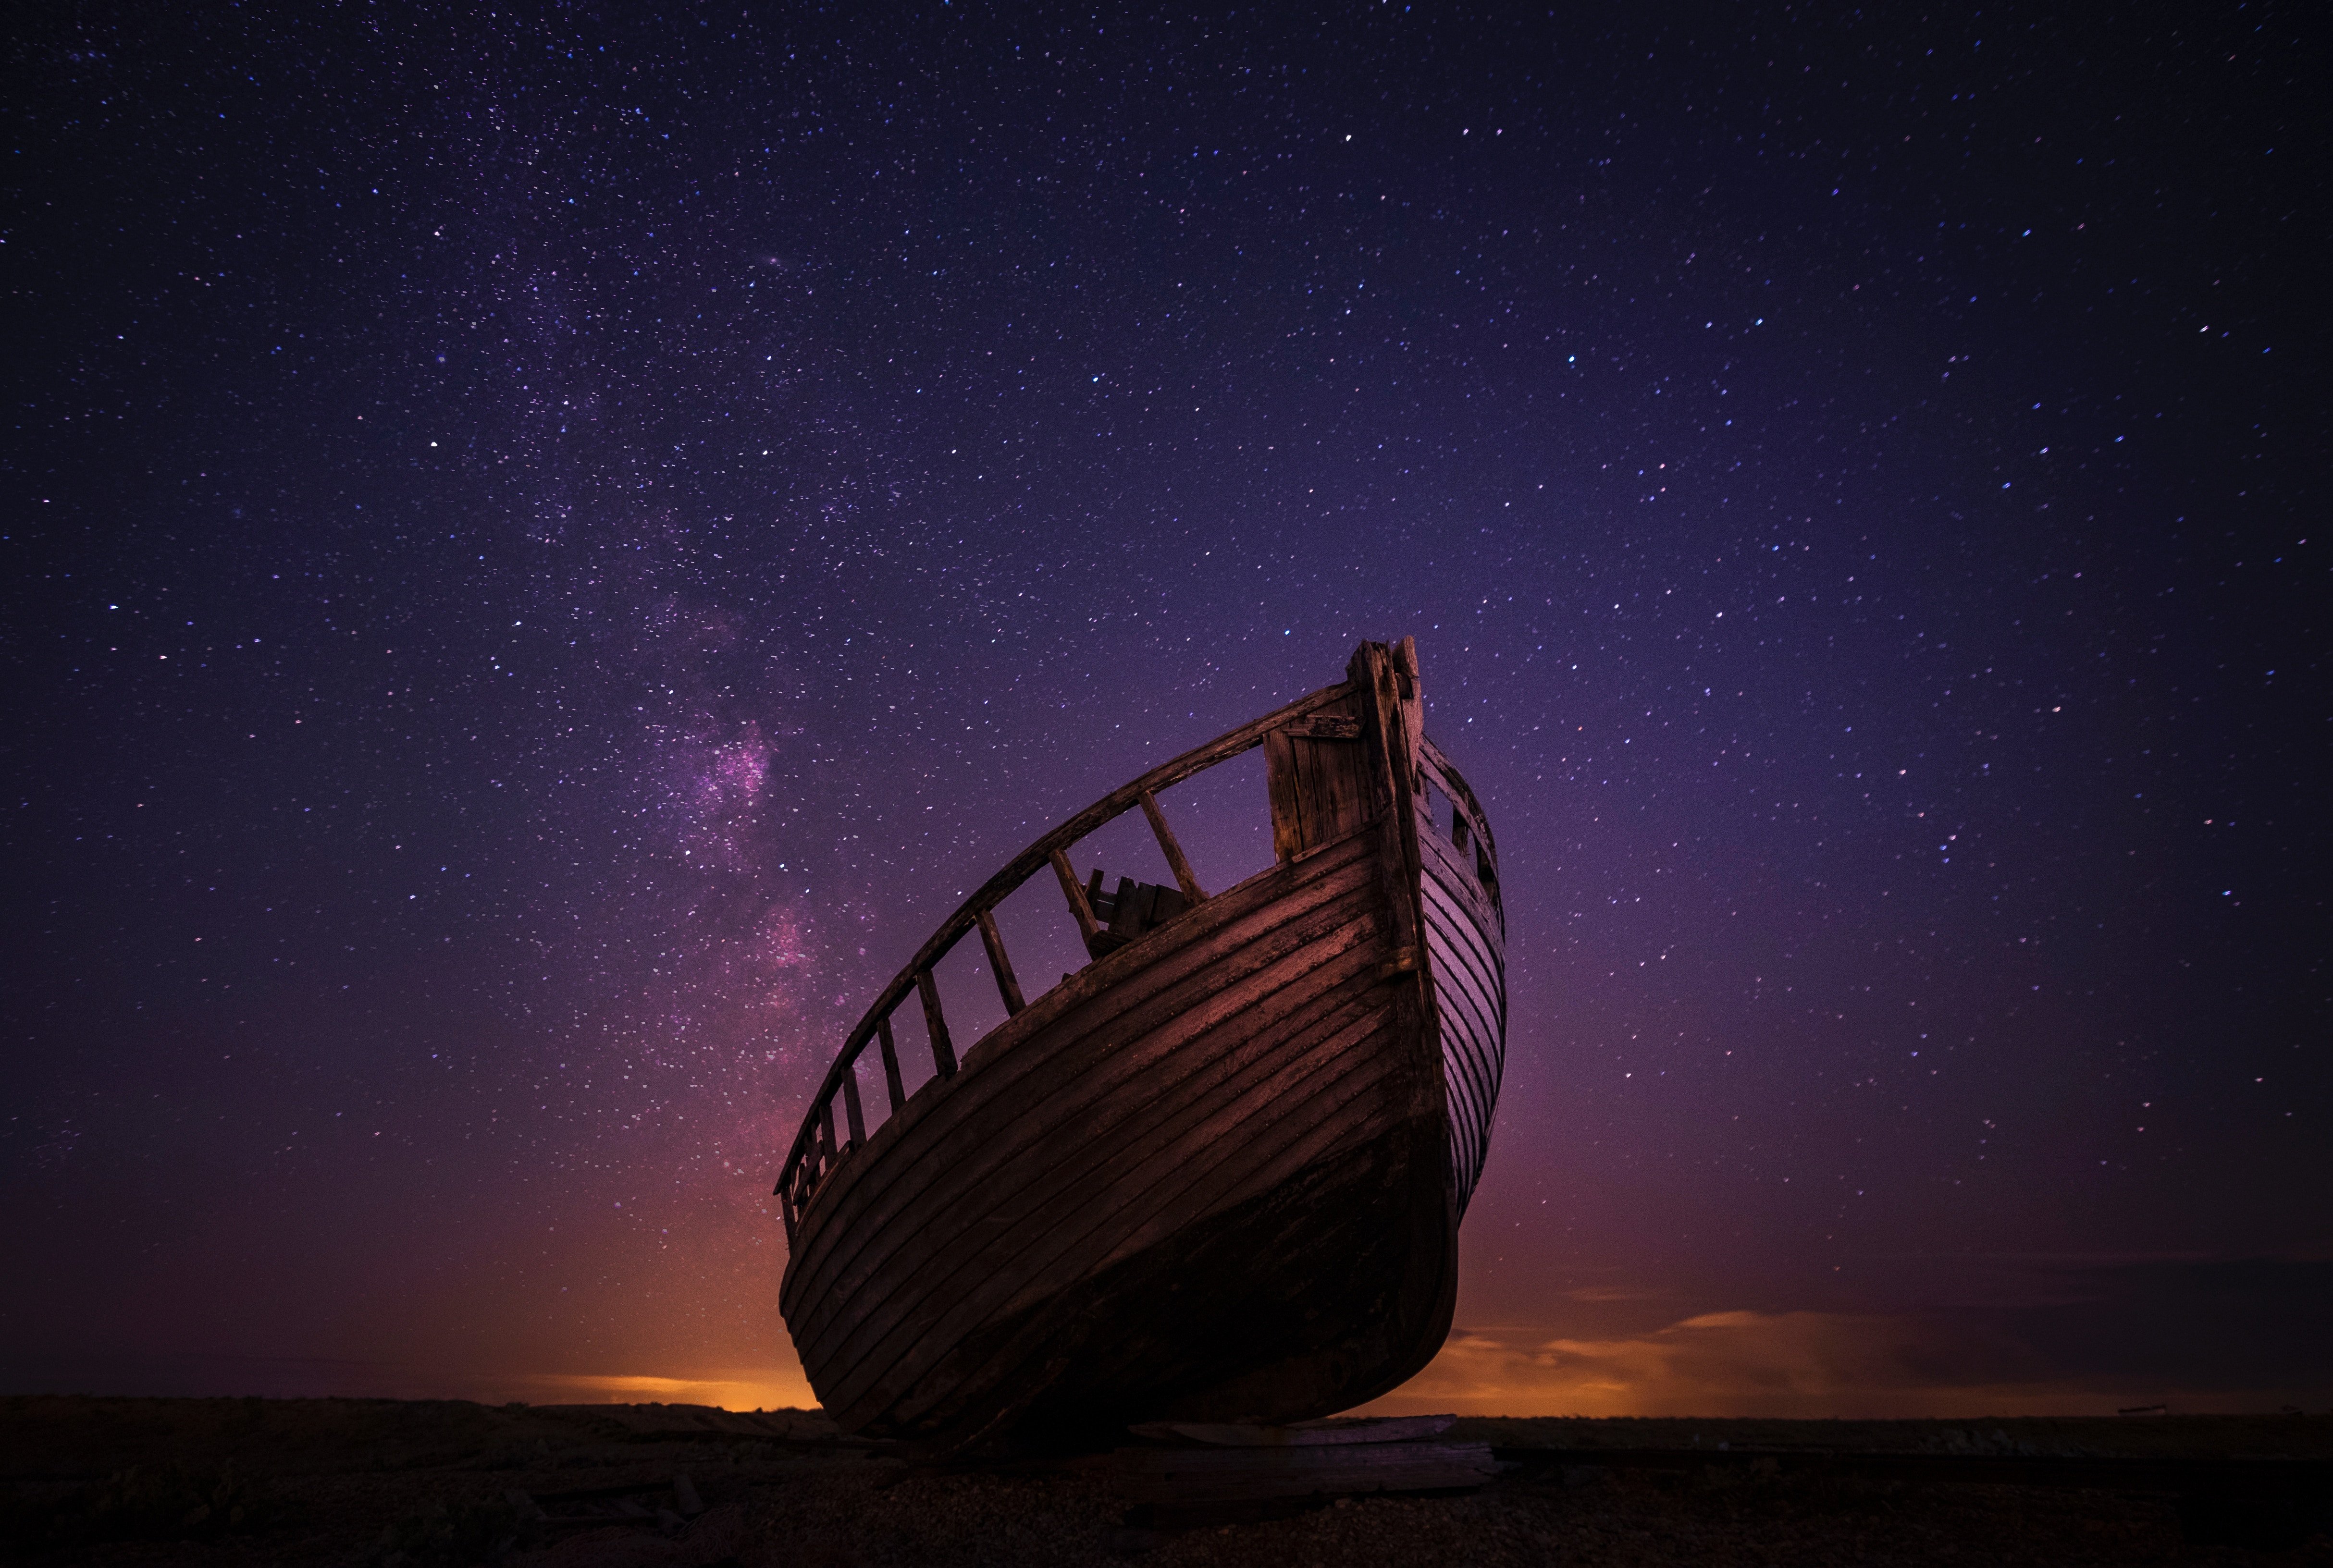 130186 Screensavers and Wallpapers Boat for phone. Download Nature, Night, Starry Sky, Boat pictures for free